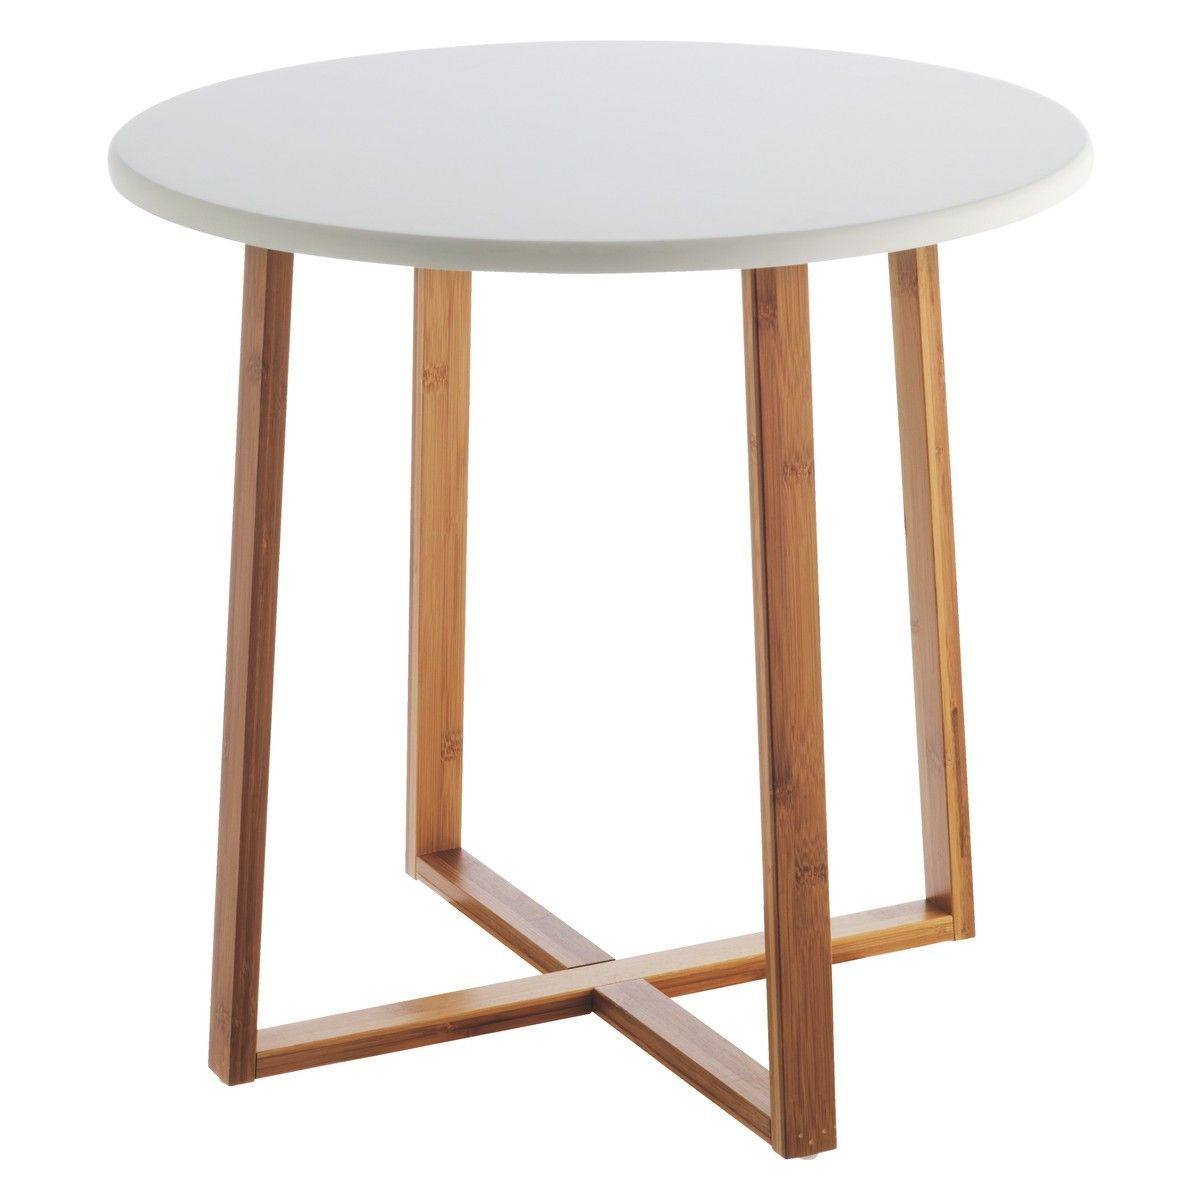 DREW Bamboo and white lacquer large side table | Living rooms ...